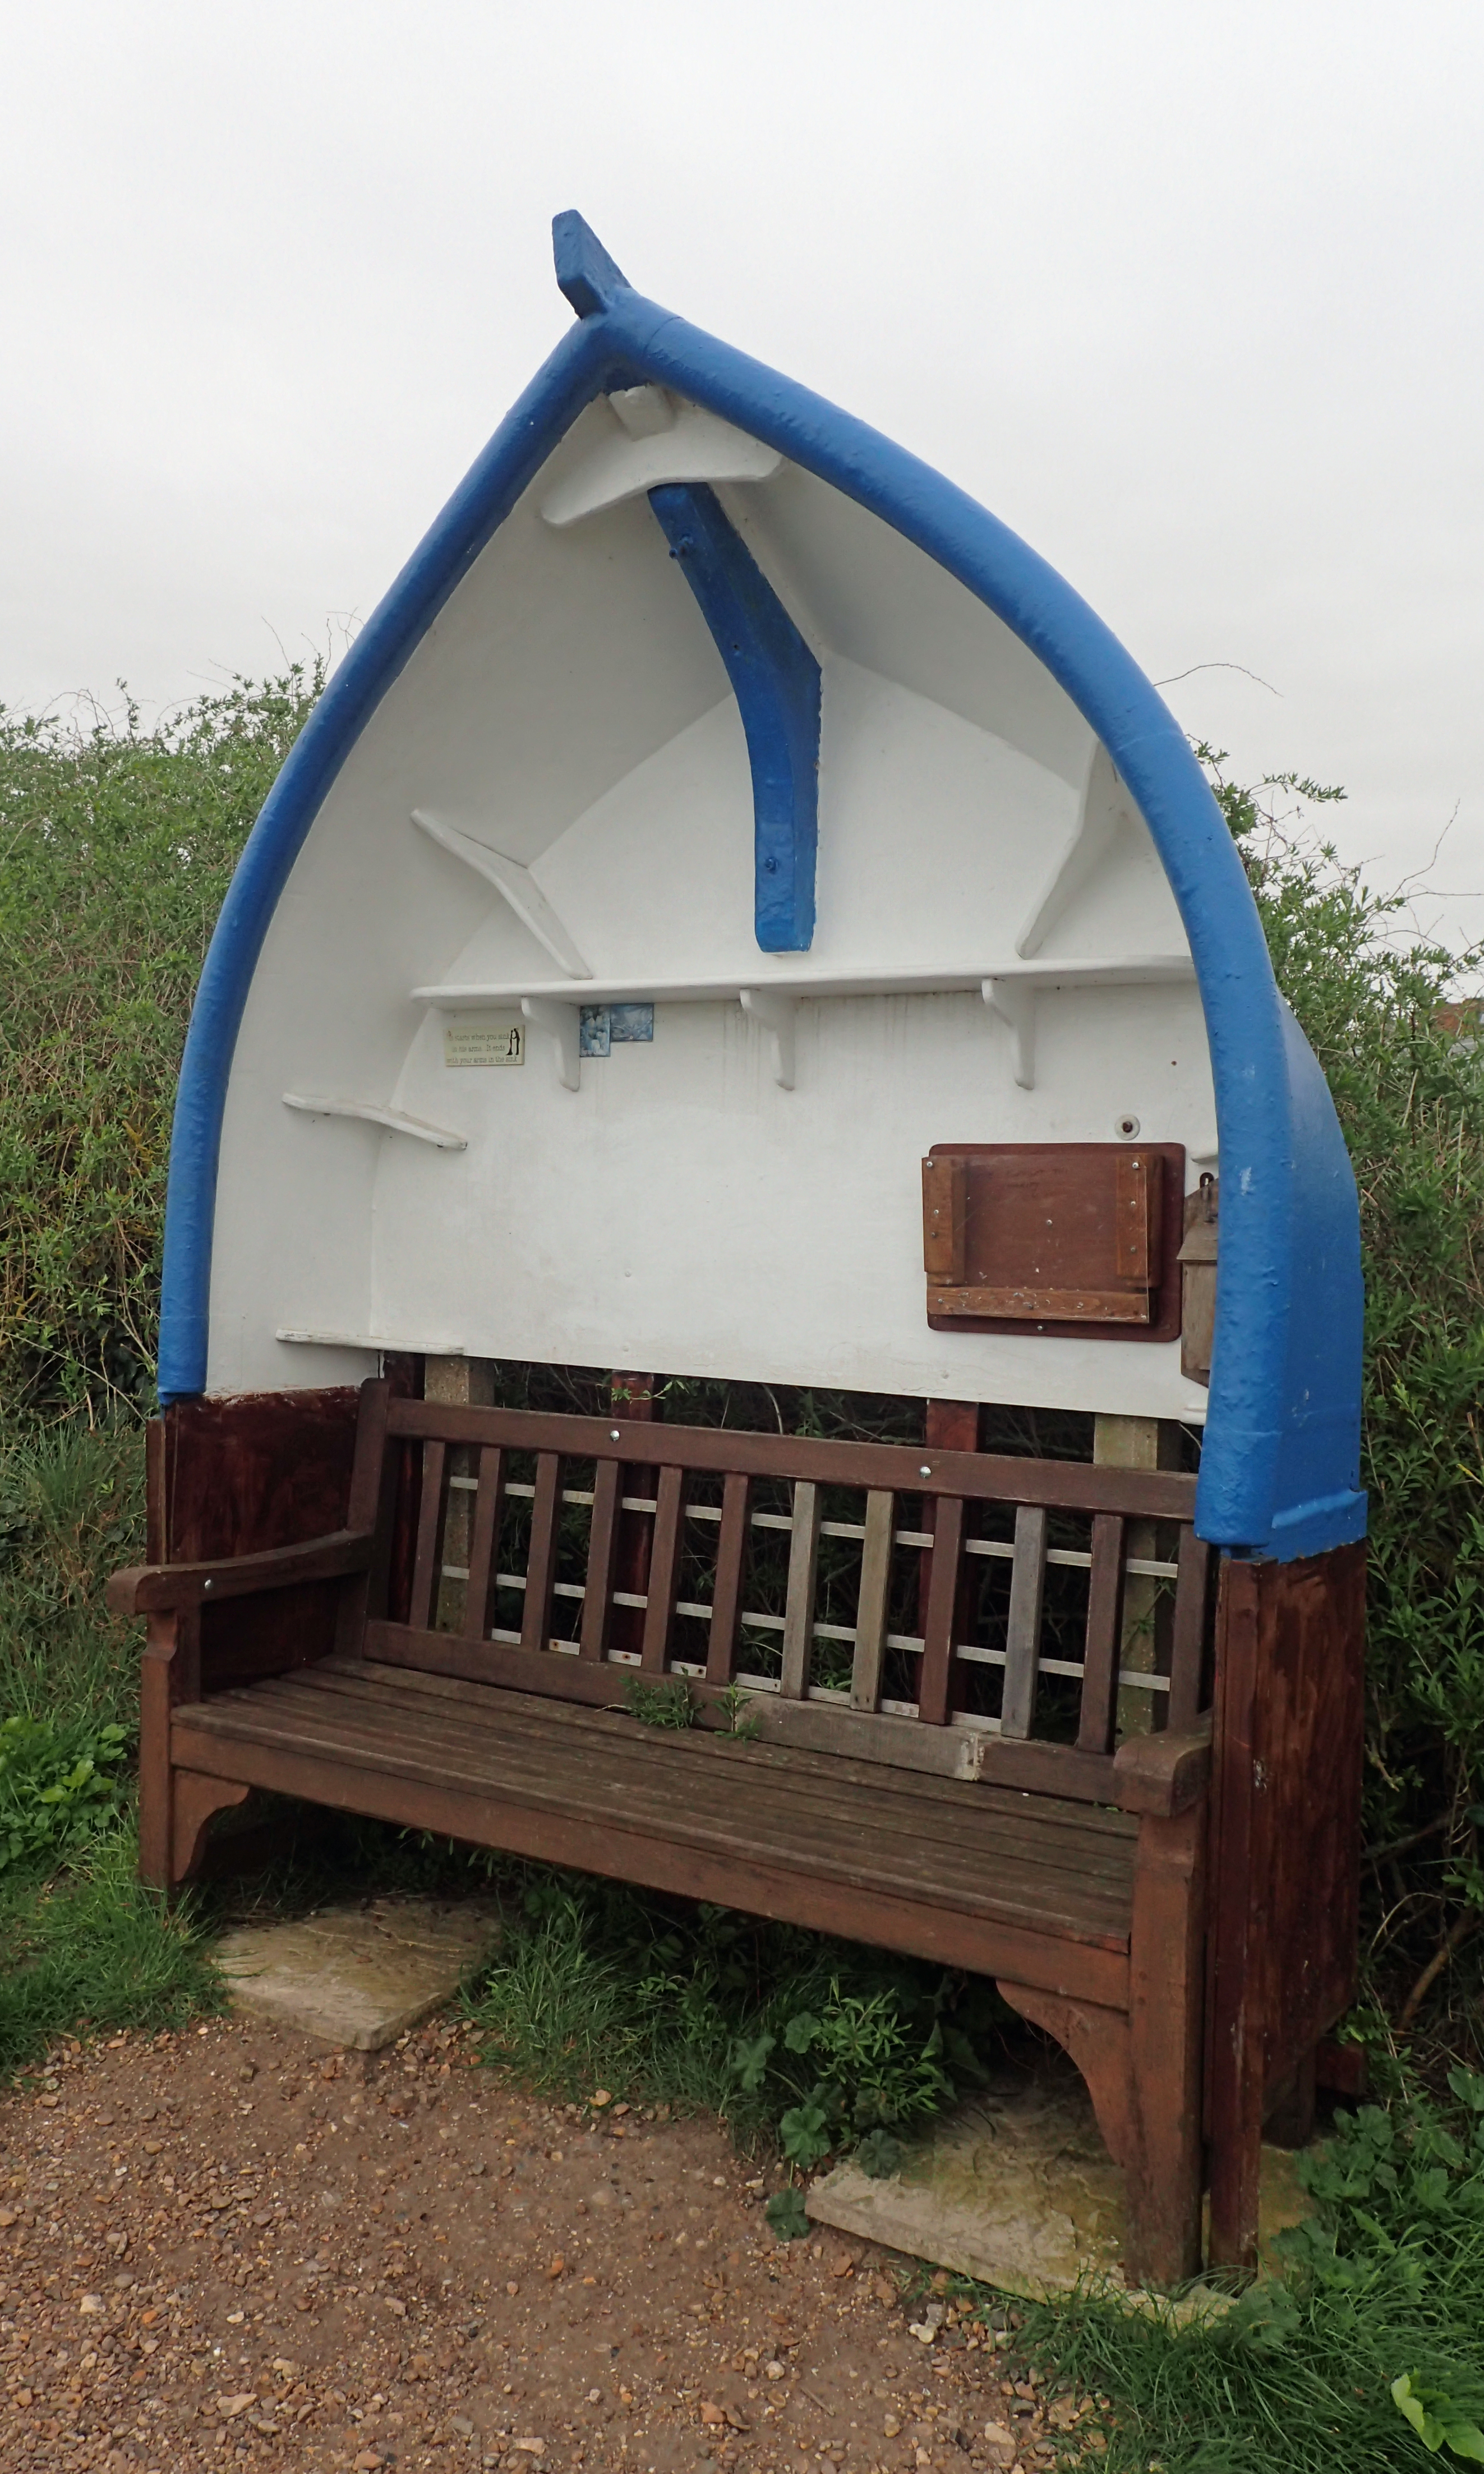 Reminders of a seafaring community can be found everywhere